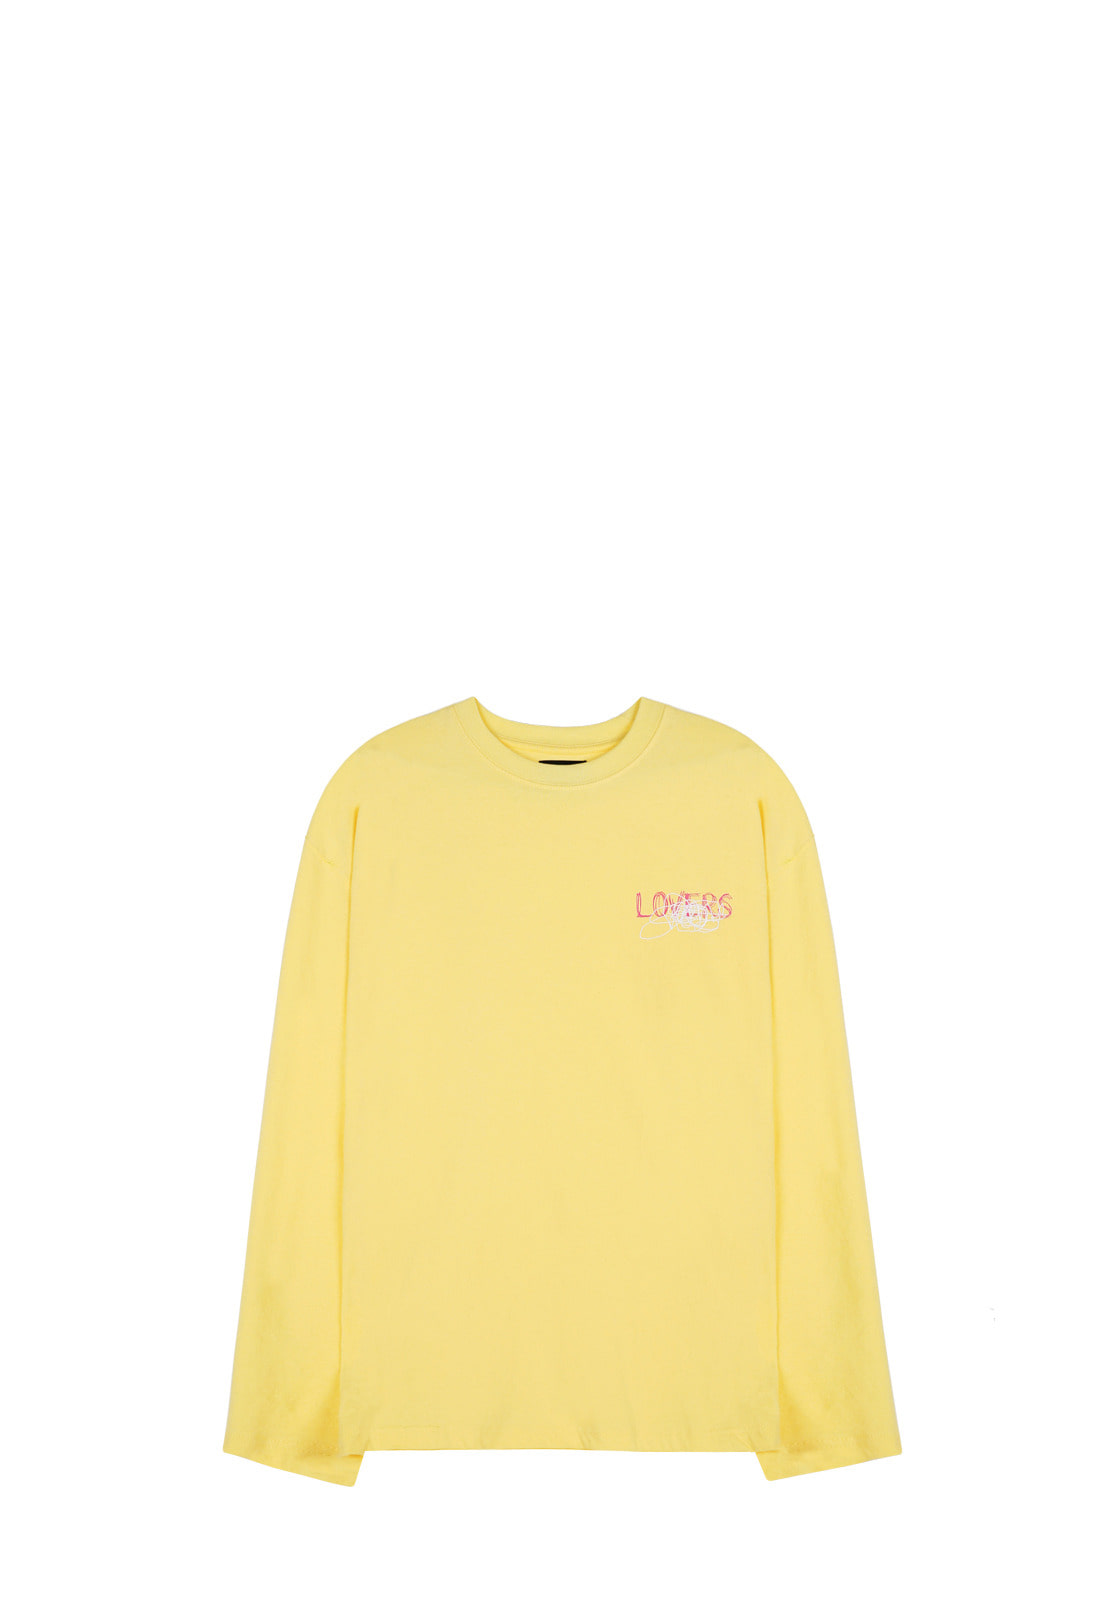 V341 GRAFFITI LONG-SLEEVE  YELLOW